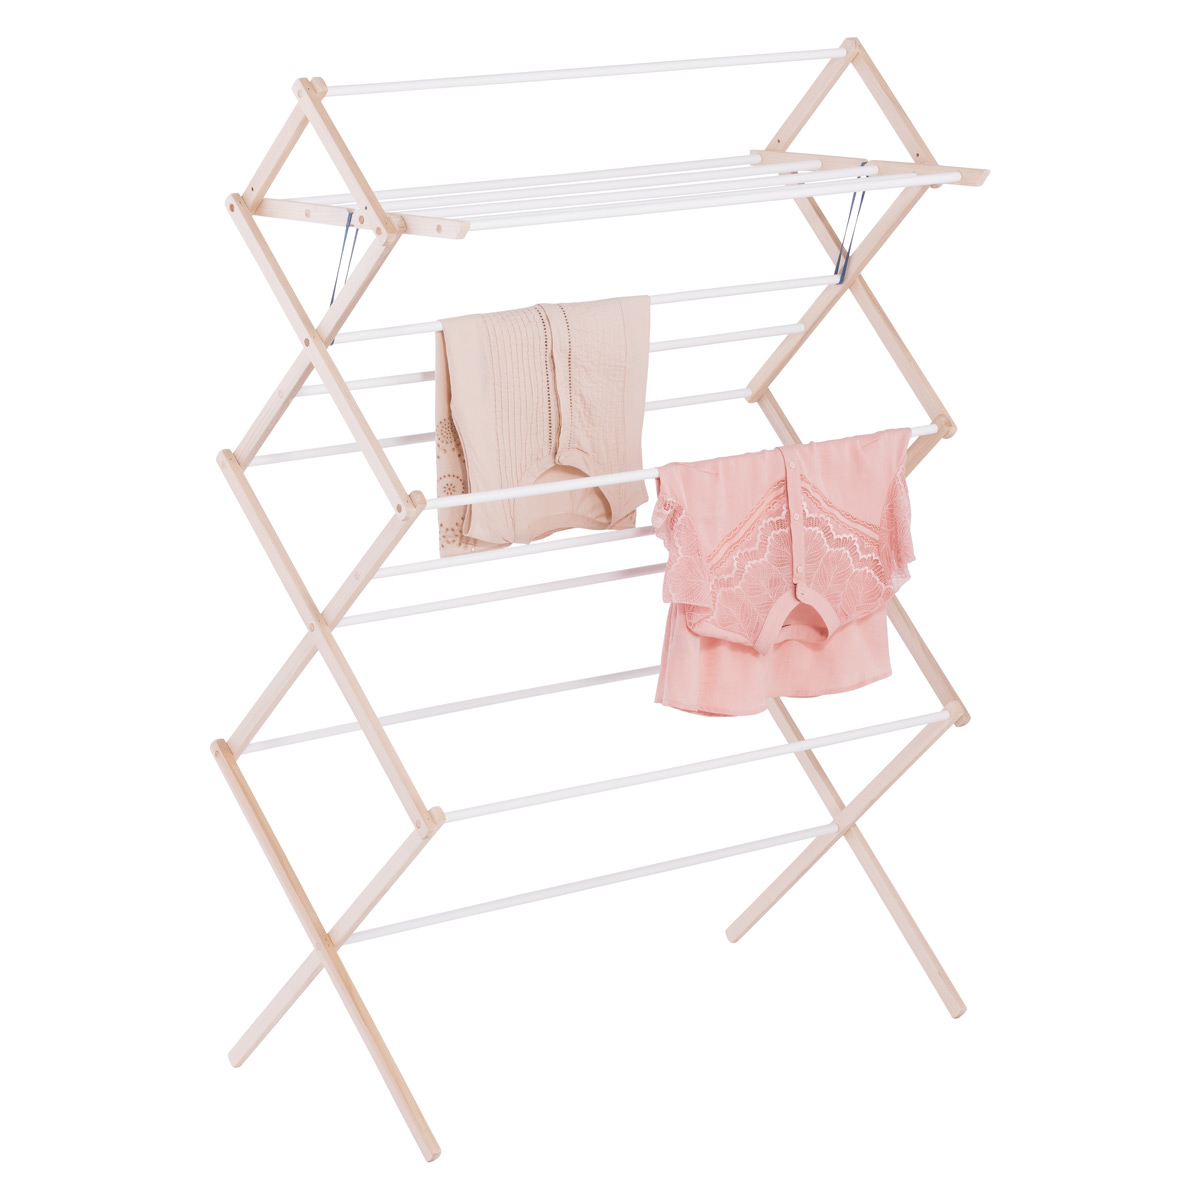 15-Dowel Wooden Clothes Drying Rack